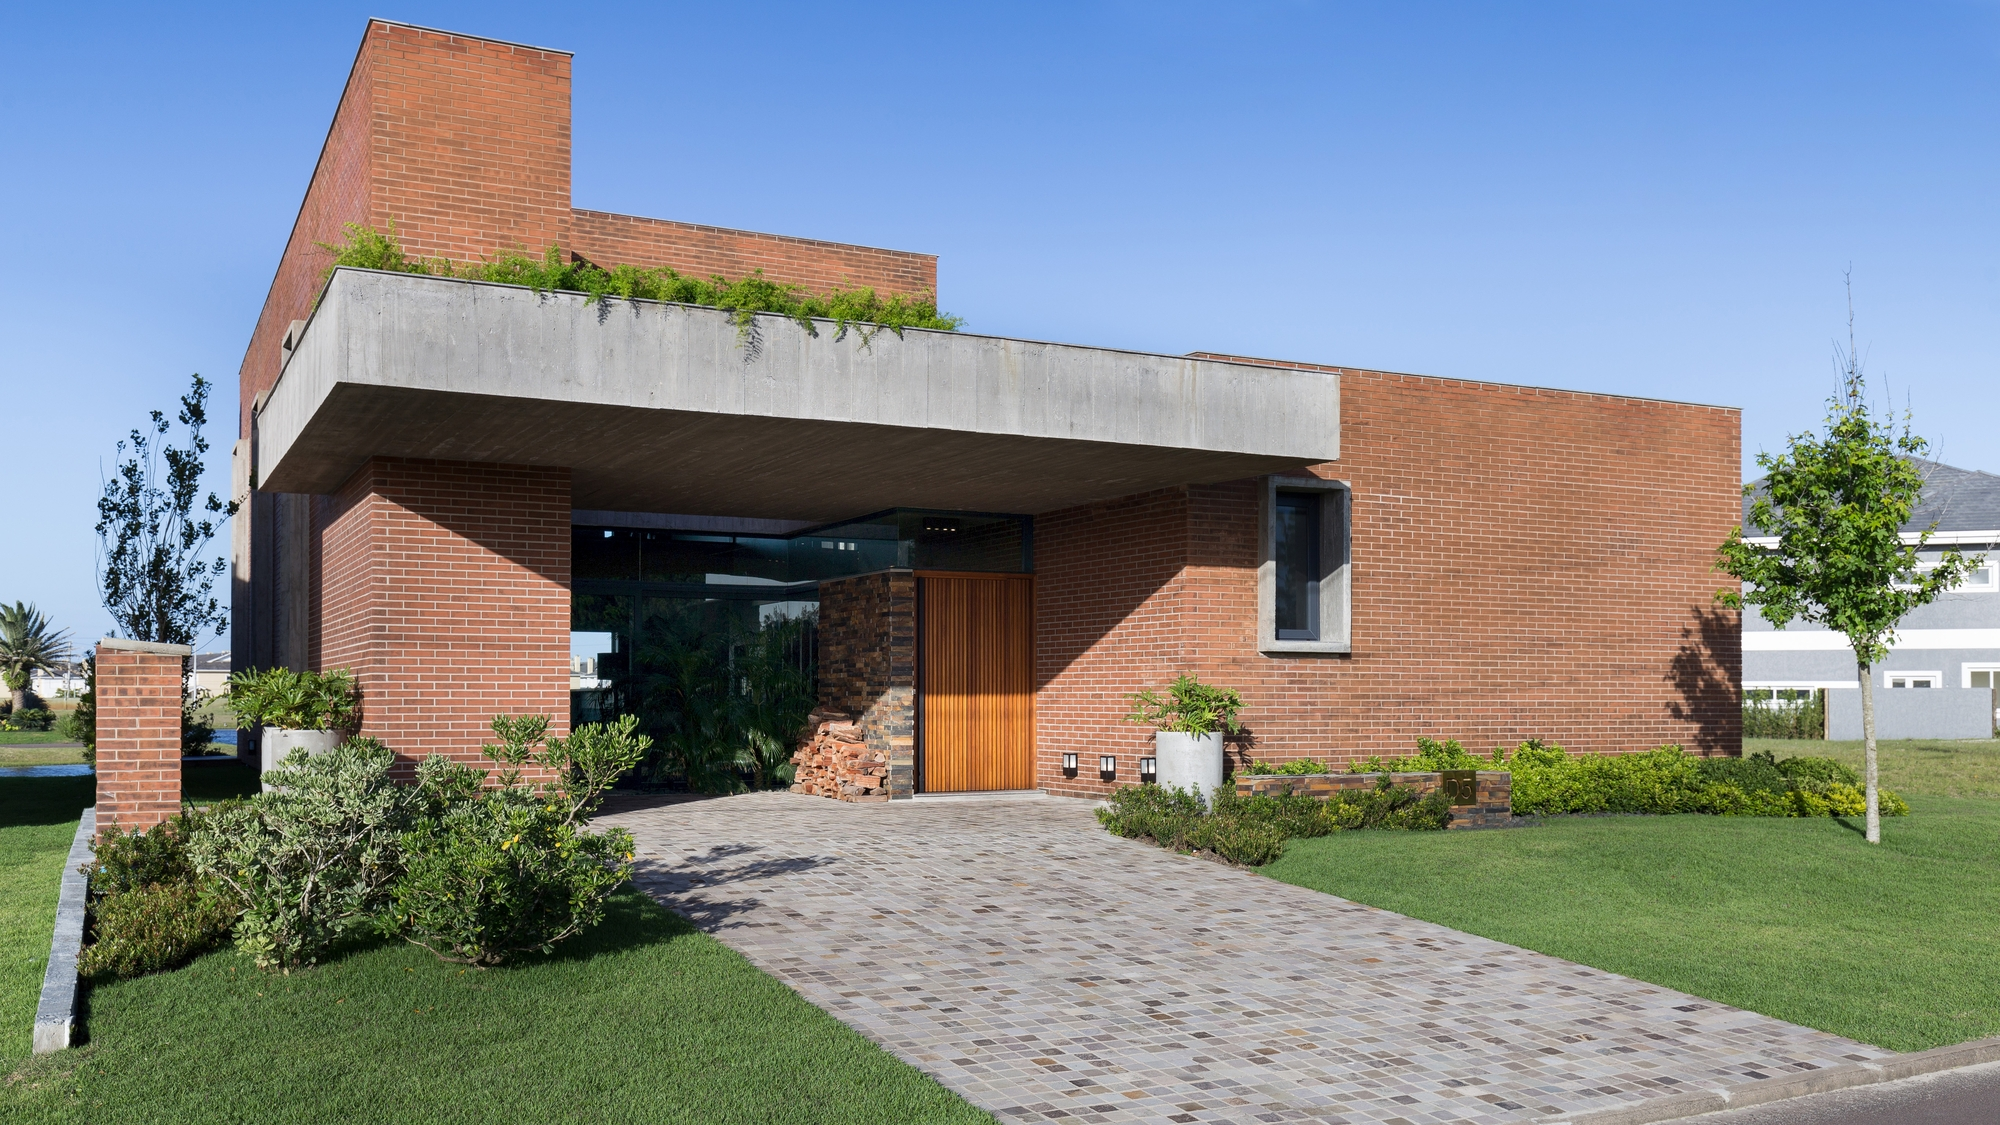 Casa marcon ramella arquitetura archdaily brasil for Maison moderne 64